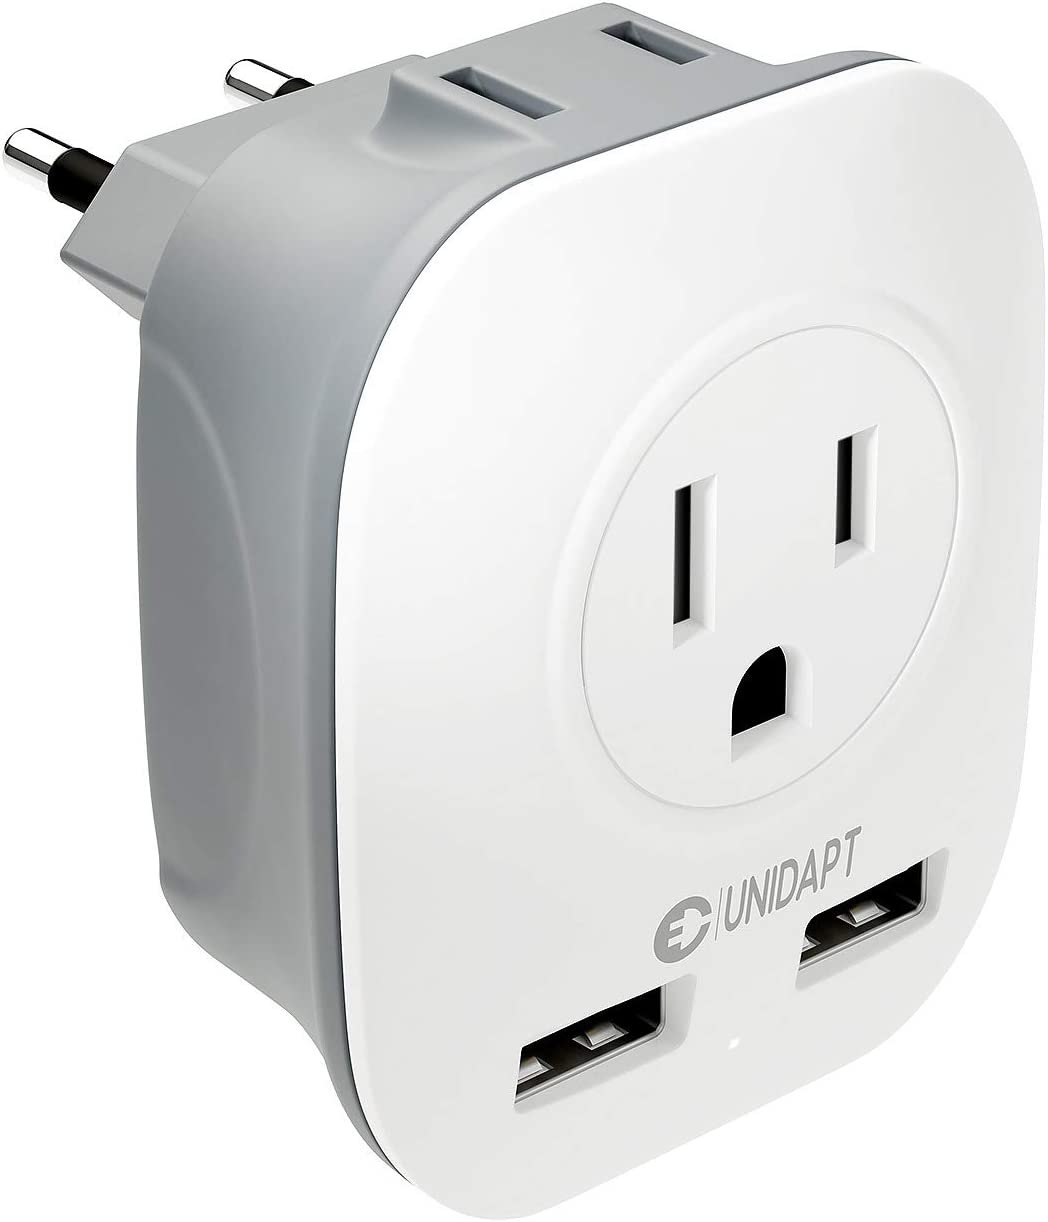 European Plug Adapter Power Charger, Unidapt USA/Canada to EU Europe Outlet Plug, European Travel Plug Adapters from USA Us to EU Europe Italy Swiss, 4 in 1 AC & USB Outlet Wall Adapter Type C